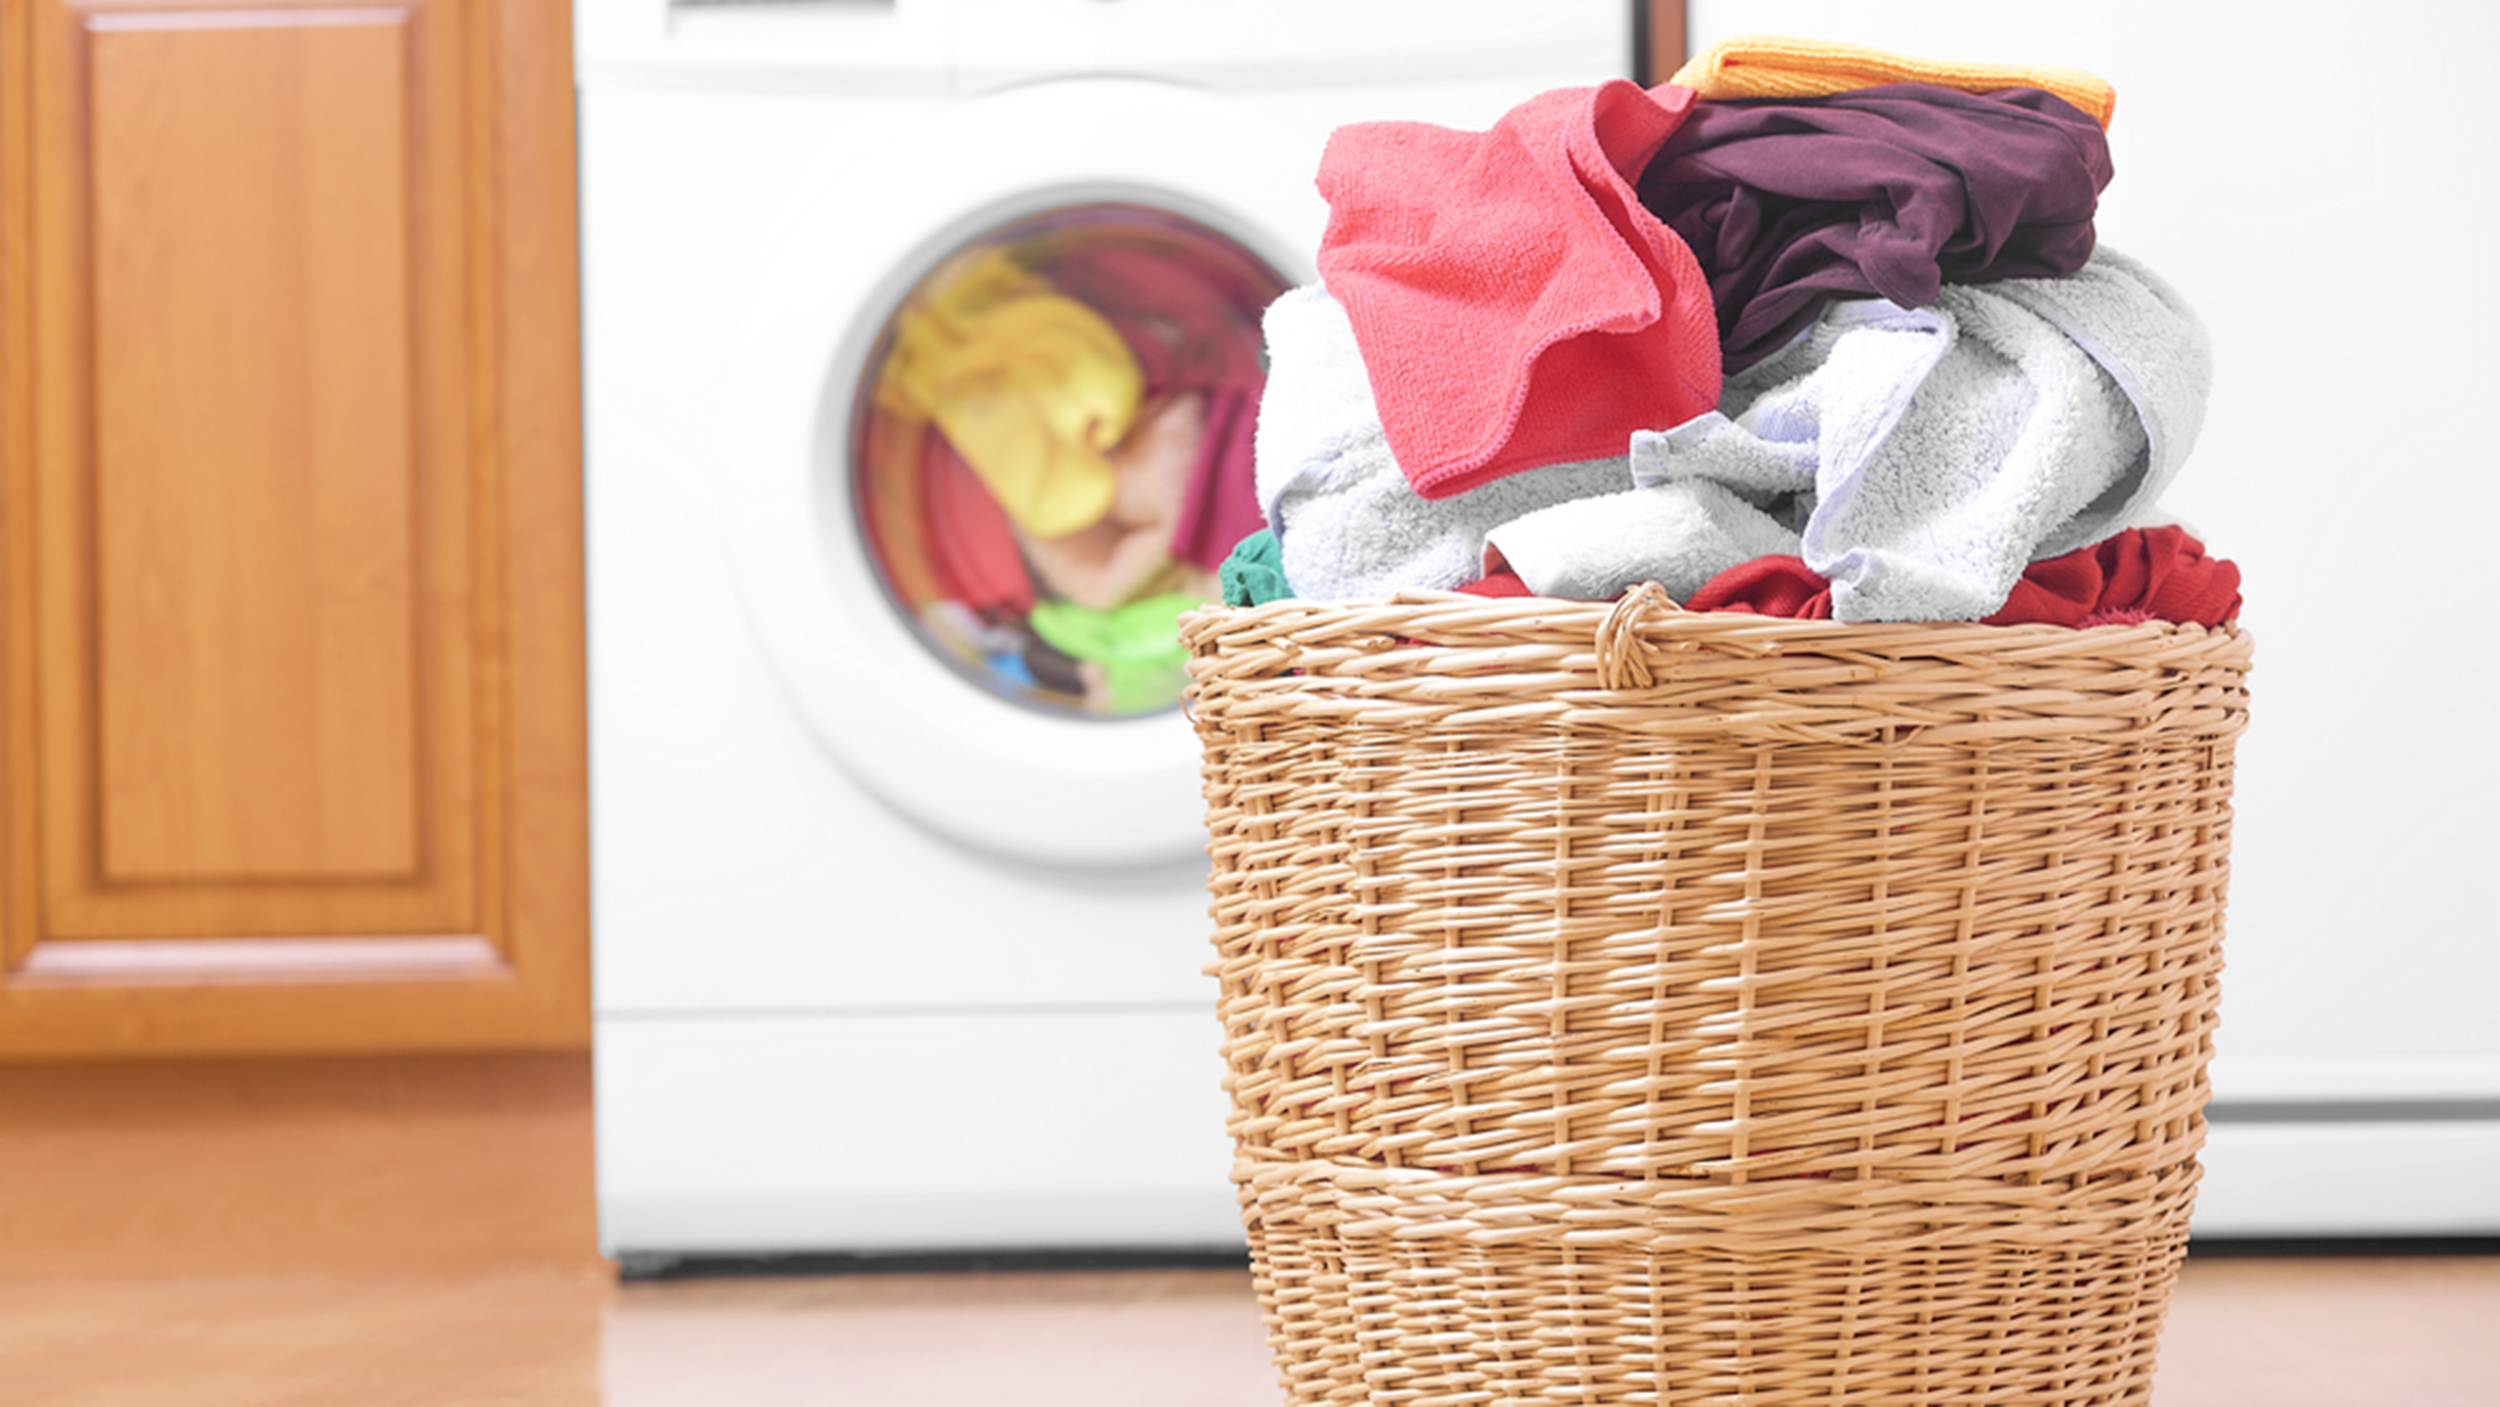 laundry-stock-today-160808-tease_8816217b49c15bf3fc07bbcd6558c2db